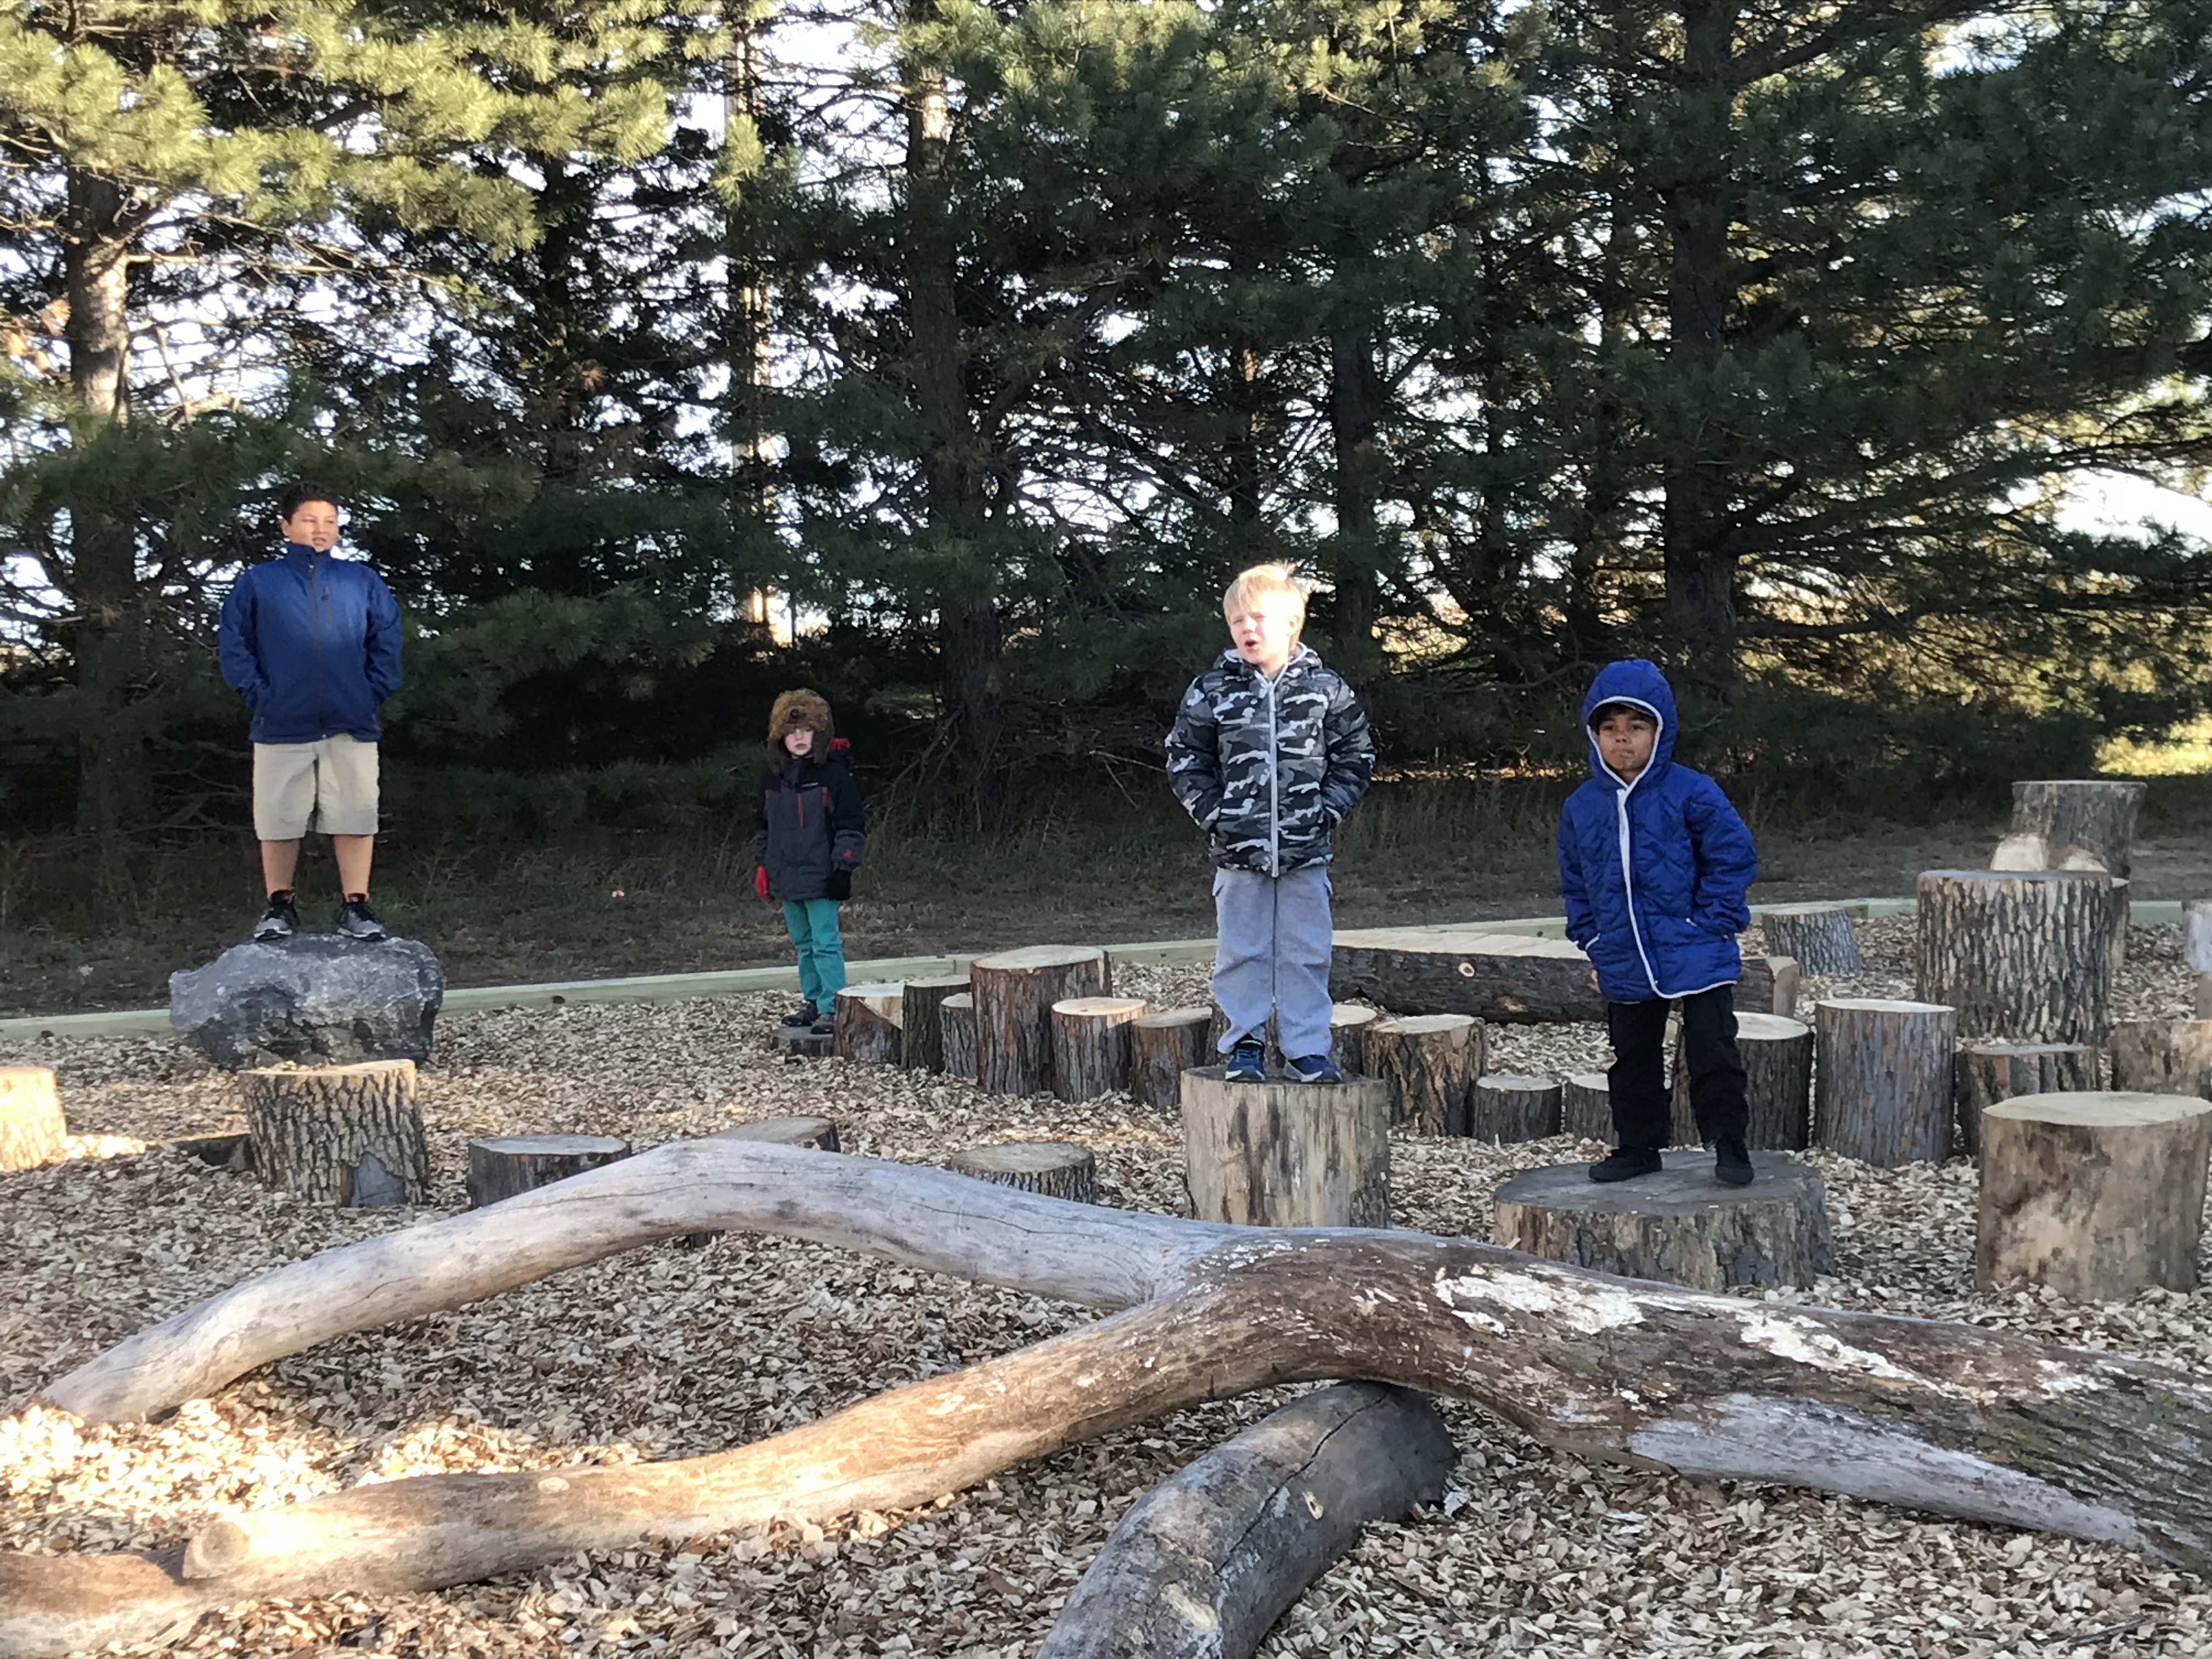 Watson Outdoor Classroom/Natural Playground image